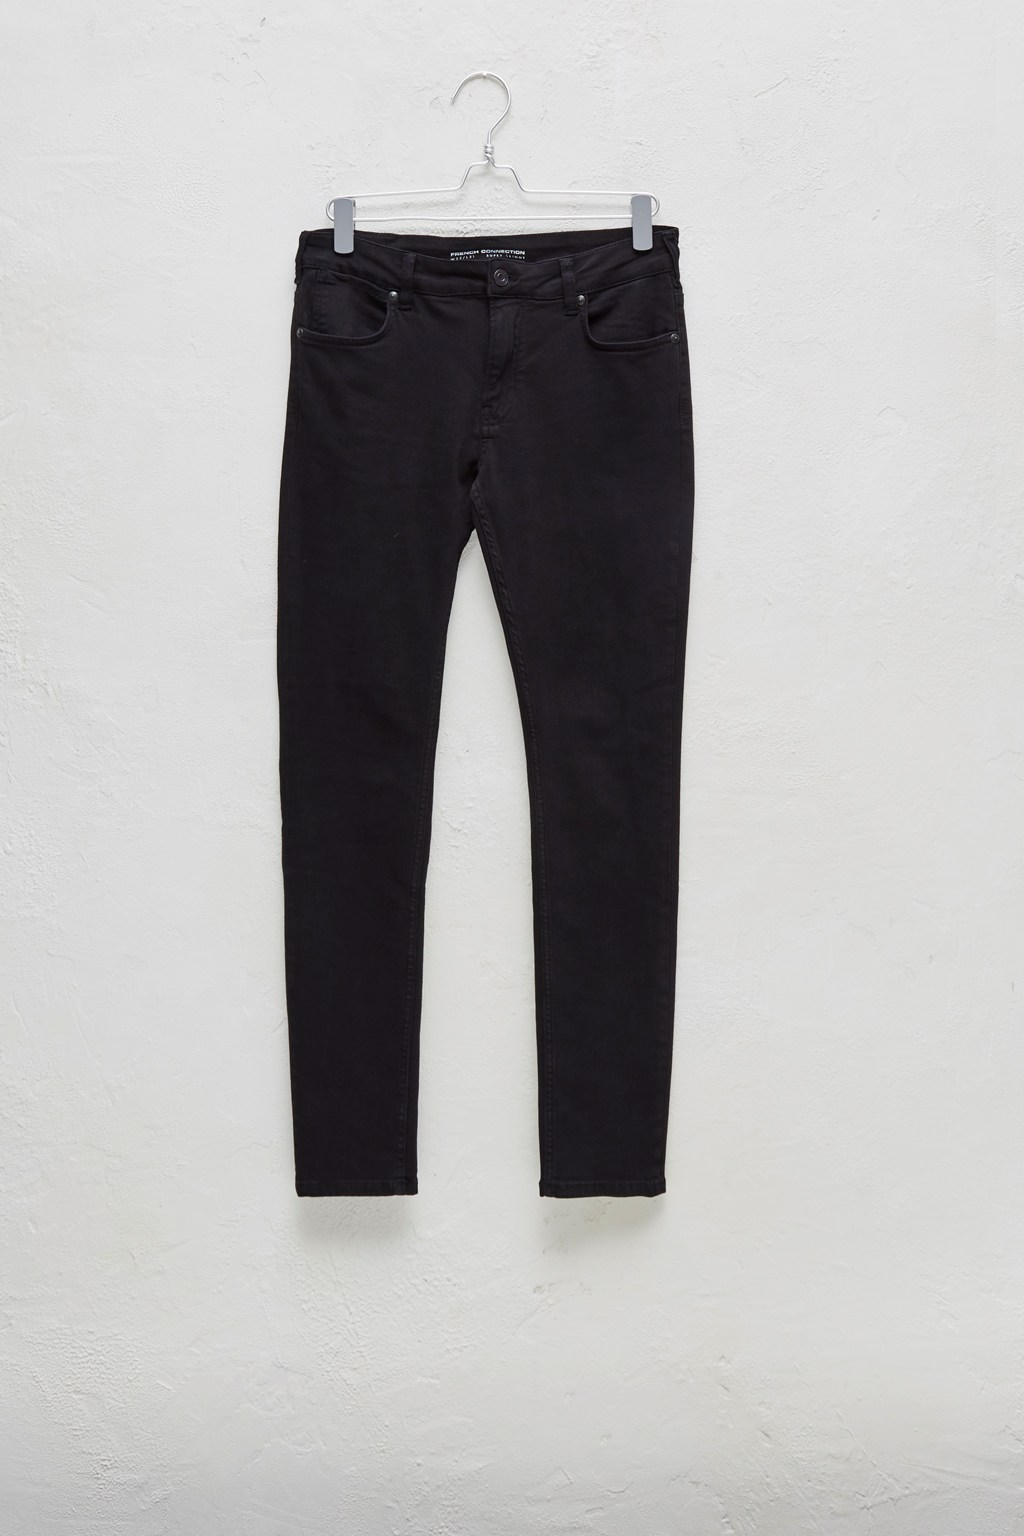 Rebound Stretch Extra Skinny Jeans Best Sellers French